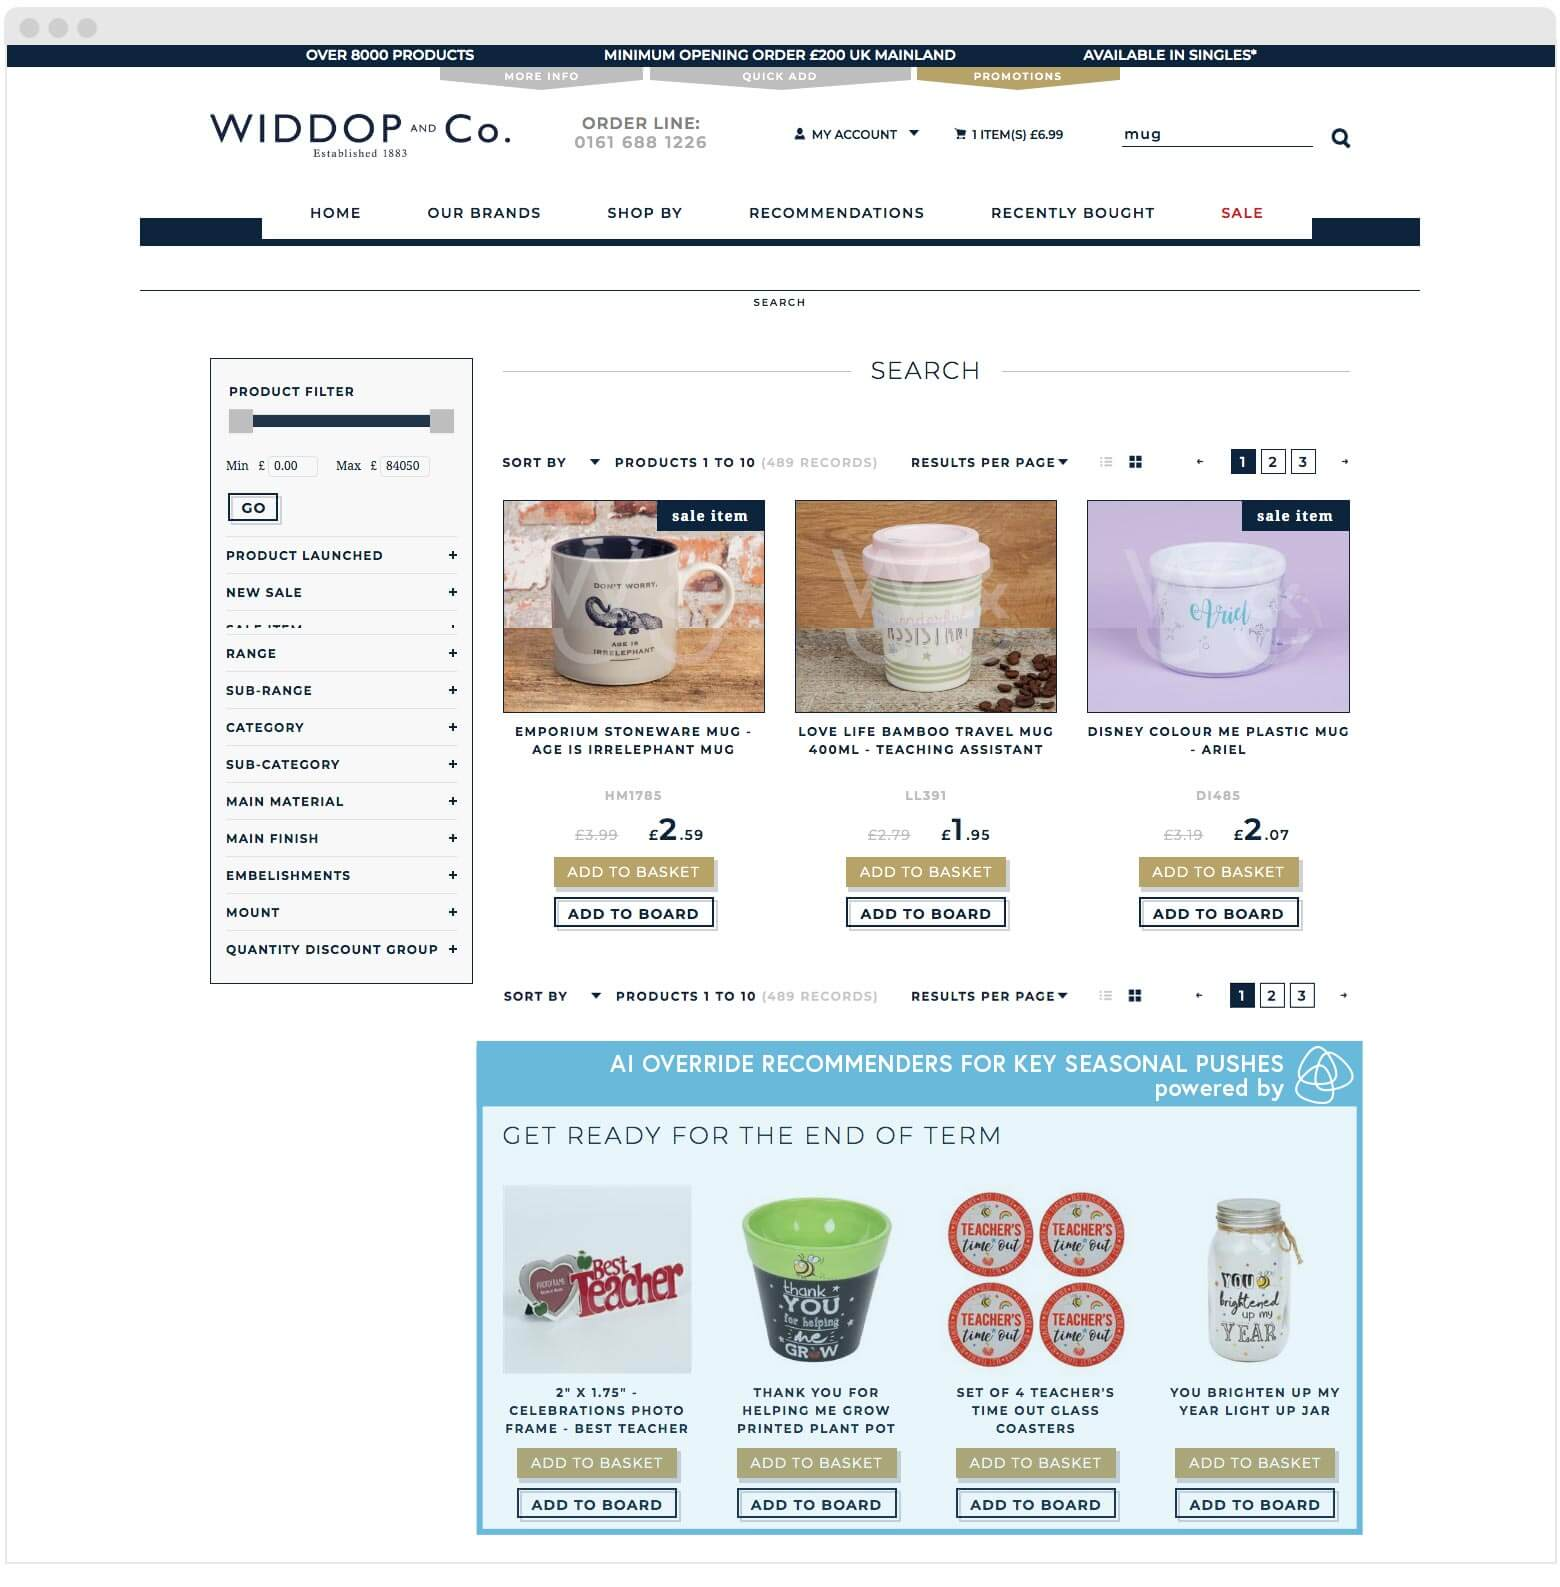 Widdop AI recommenders increasing sales and average order value